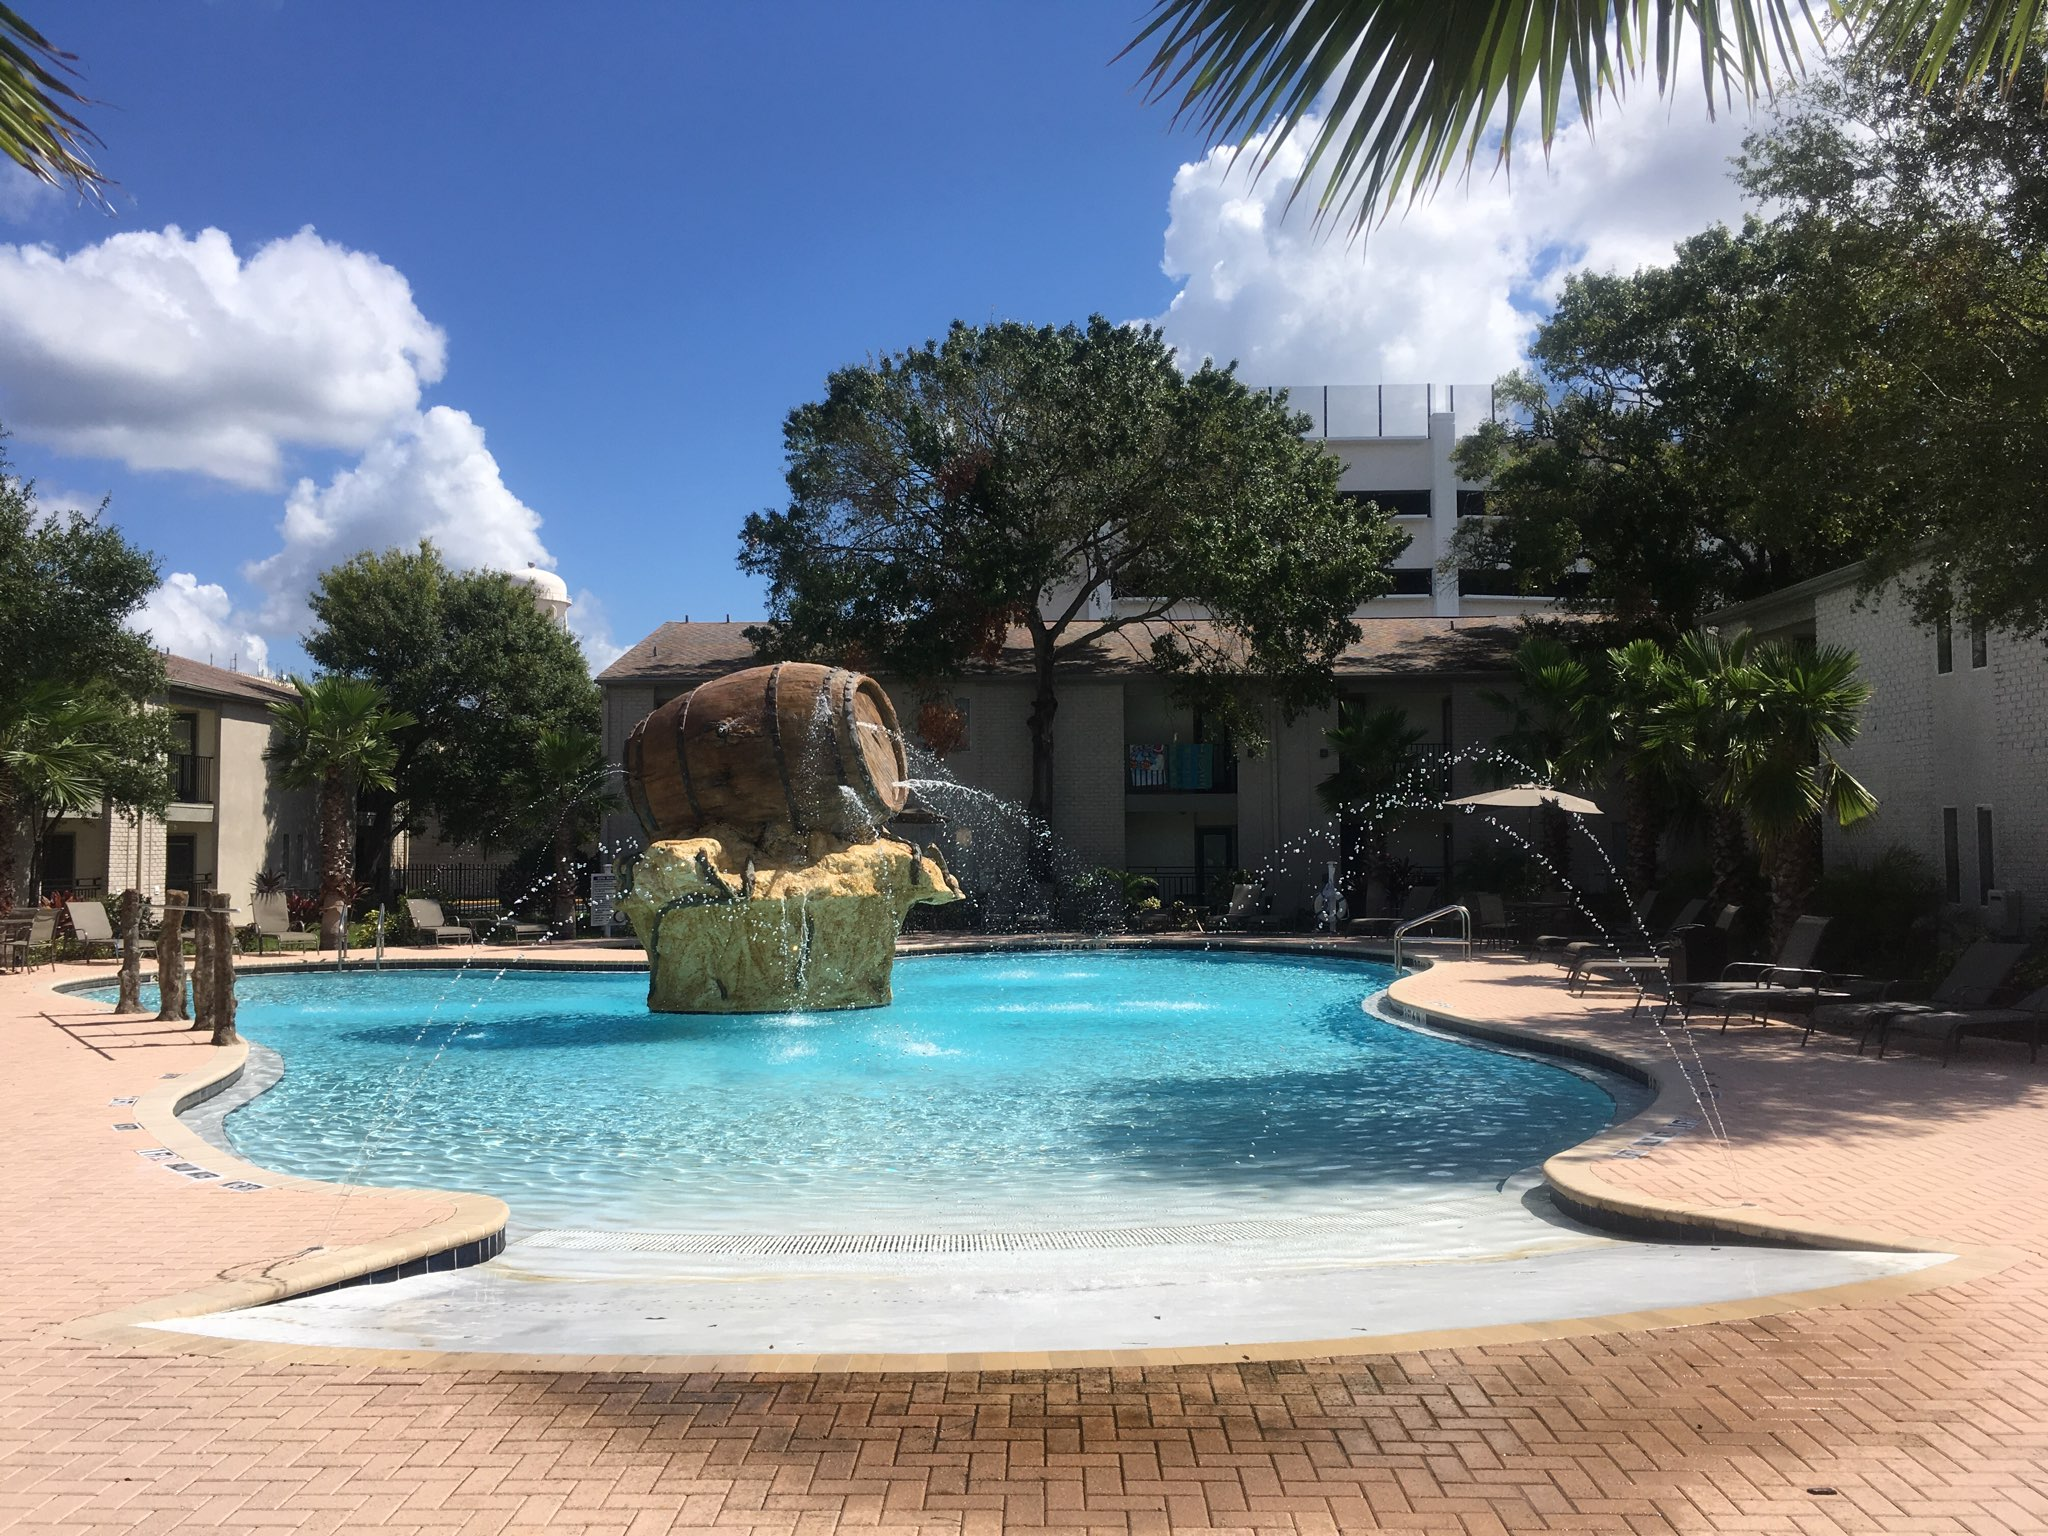 Phoenix Pools Tampa Bay 39 S Most Creative Swimming Pool Builder For Commercial Residential